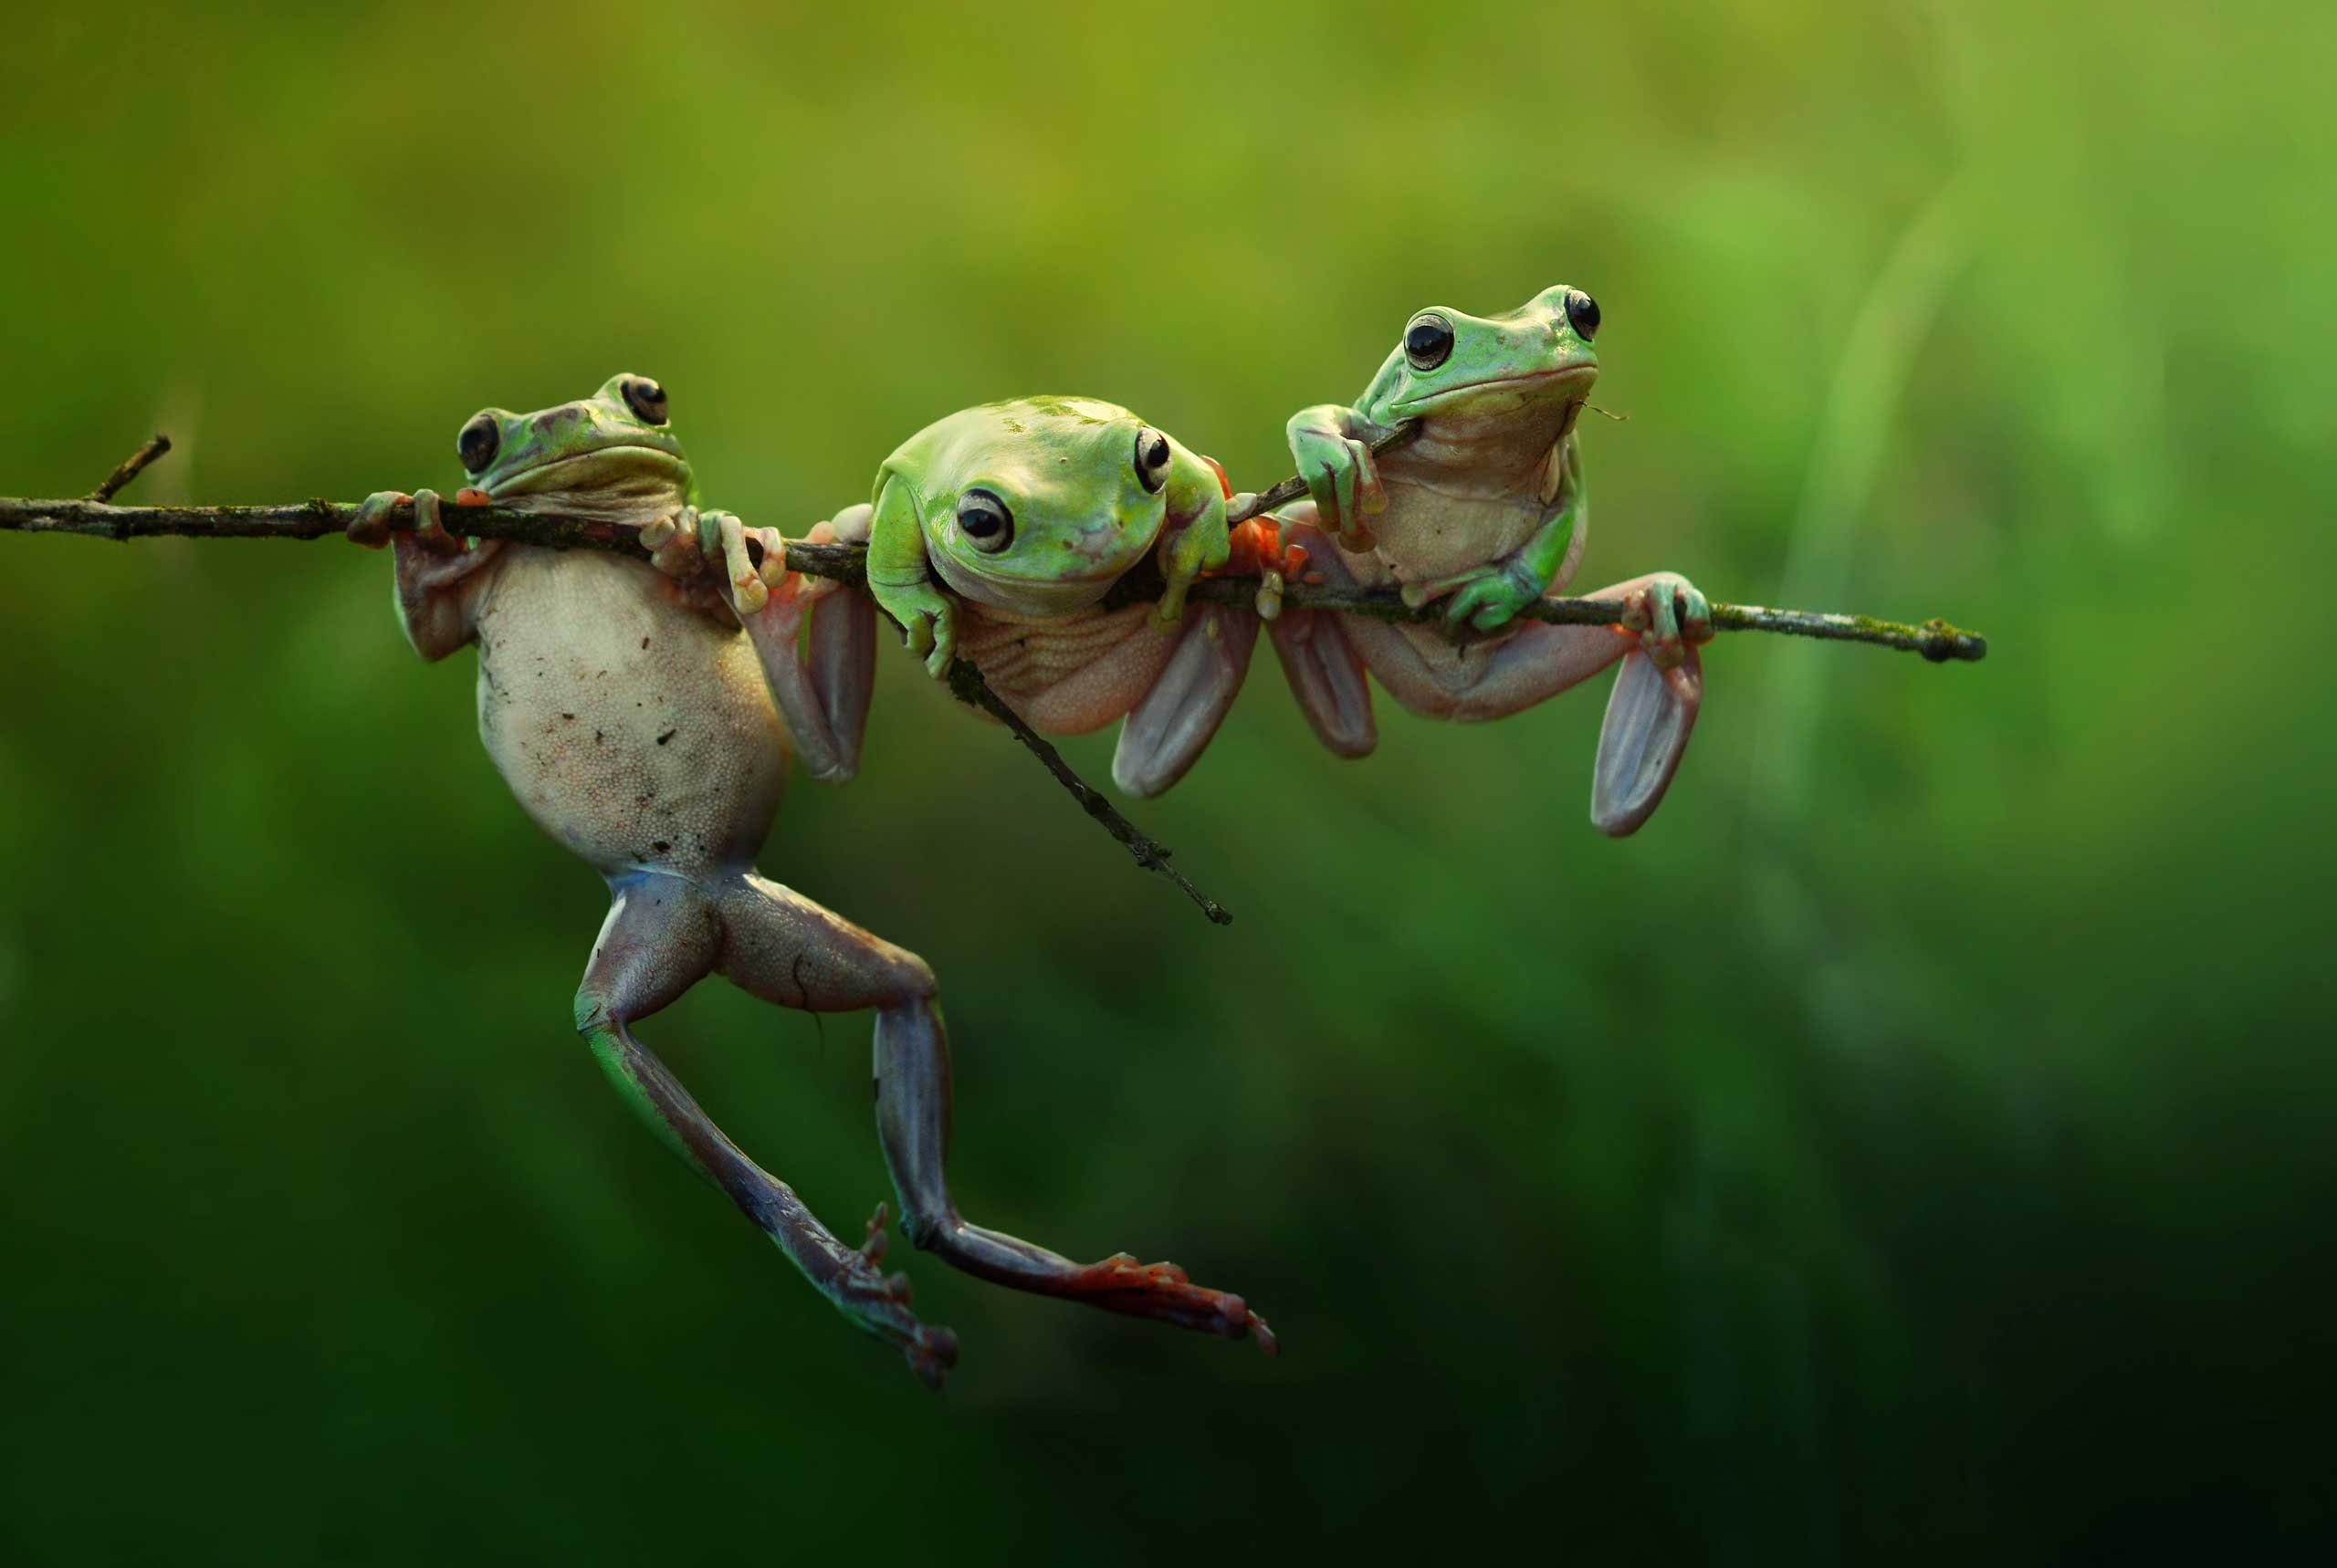 Nominated in the Nature and Wildlife category. Harfian Herdi's work on frogs in Indonesia.